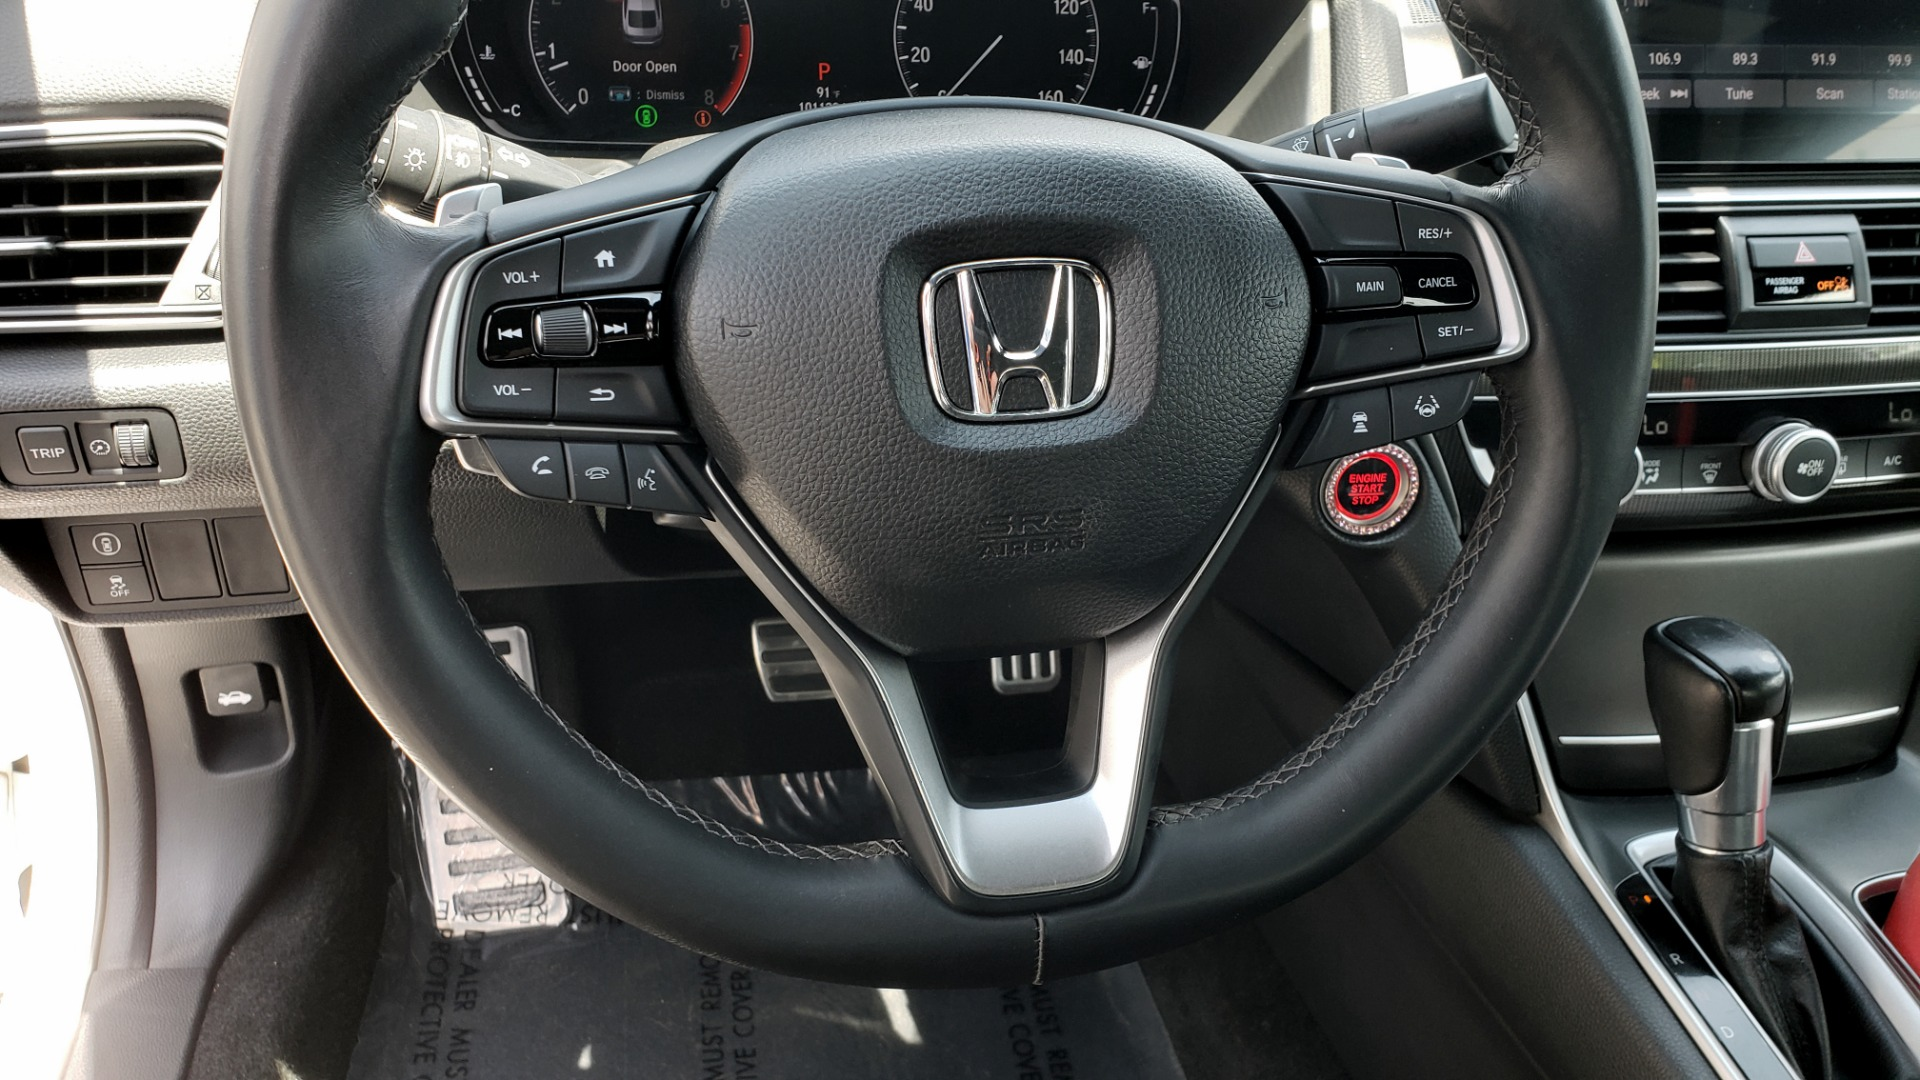 Used 2018 Honda ACCORD SEDAN SPORT 1.5T / CVT TRANS / FWD / 19IN WHEELS for sale $20,995 at Formula Imports in Charlotte NC 28227 31